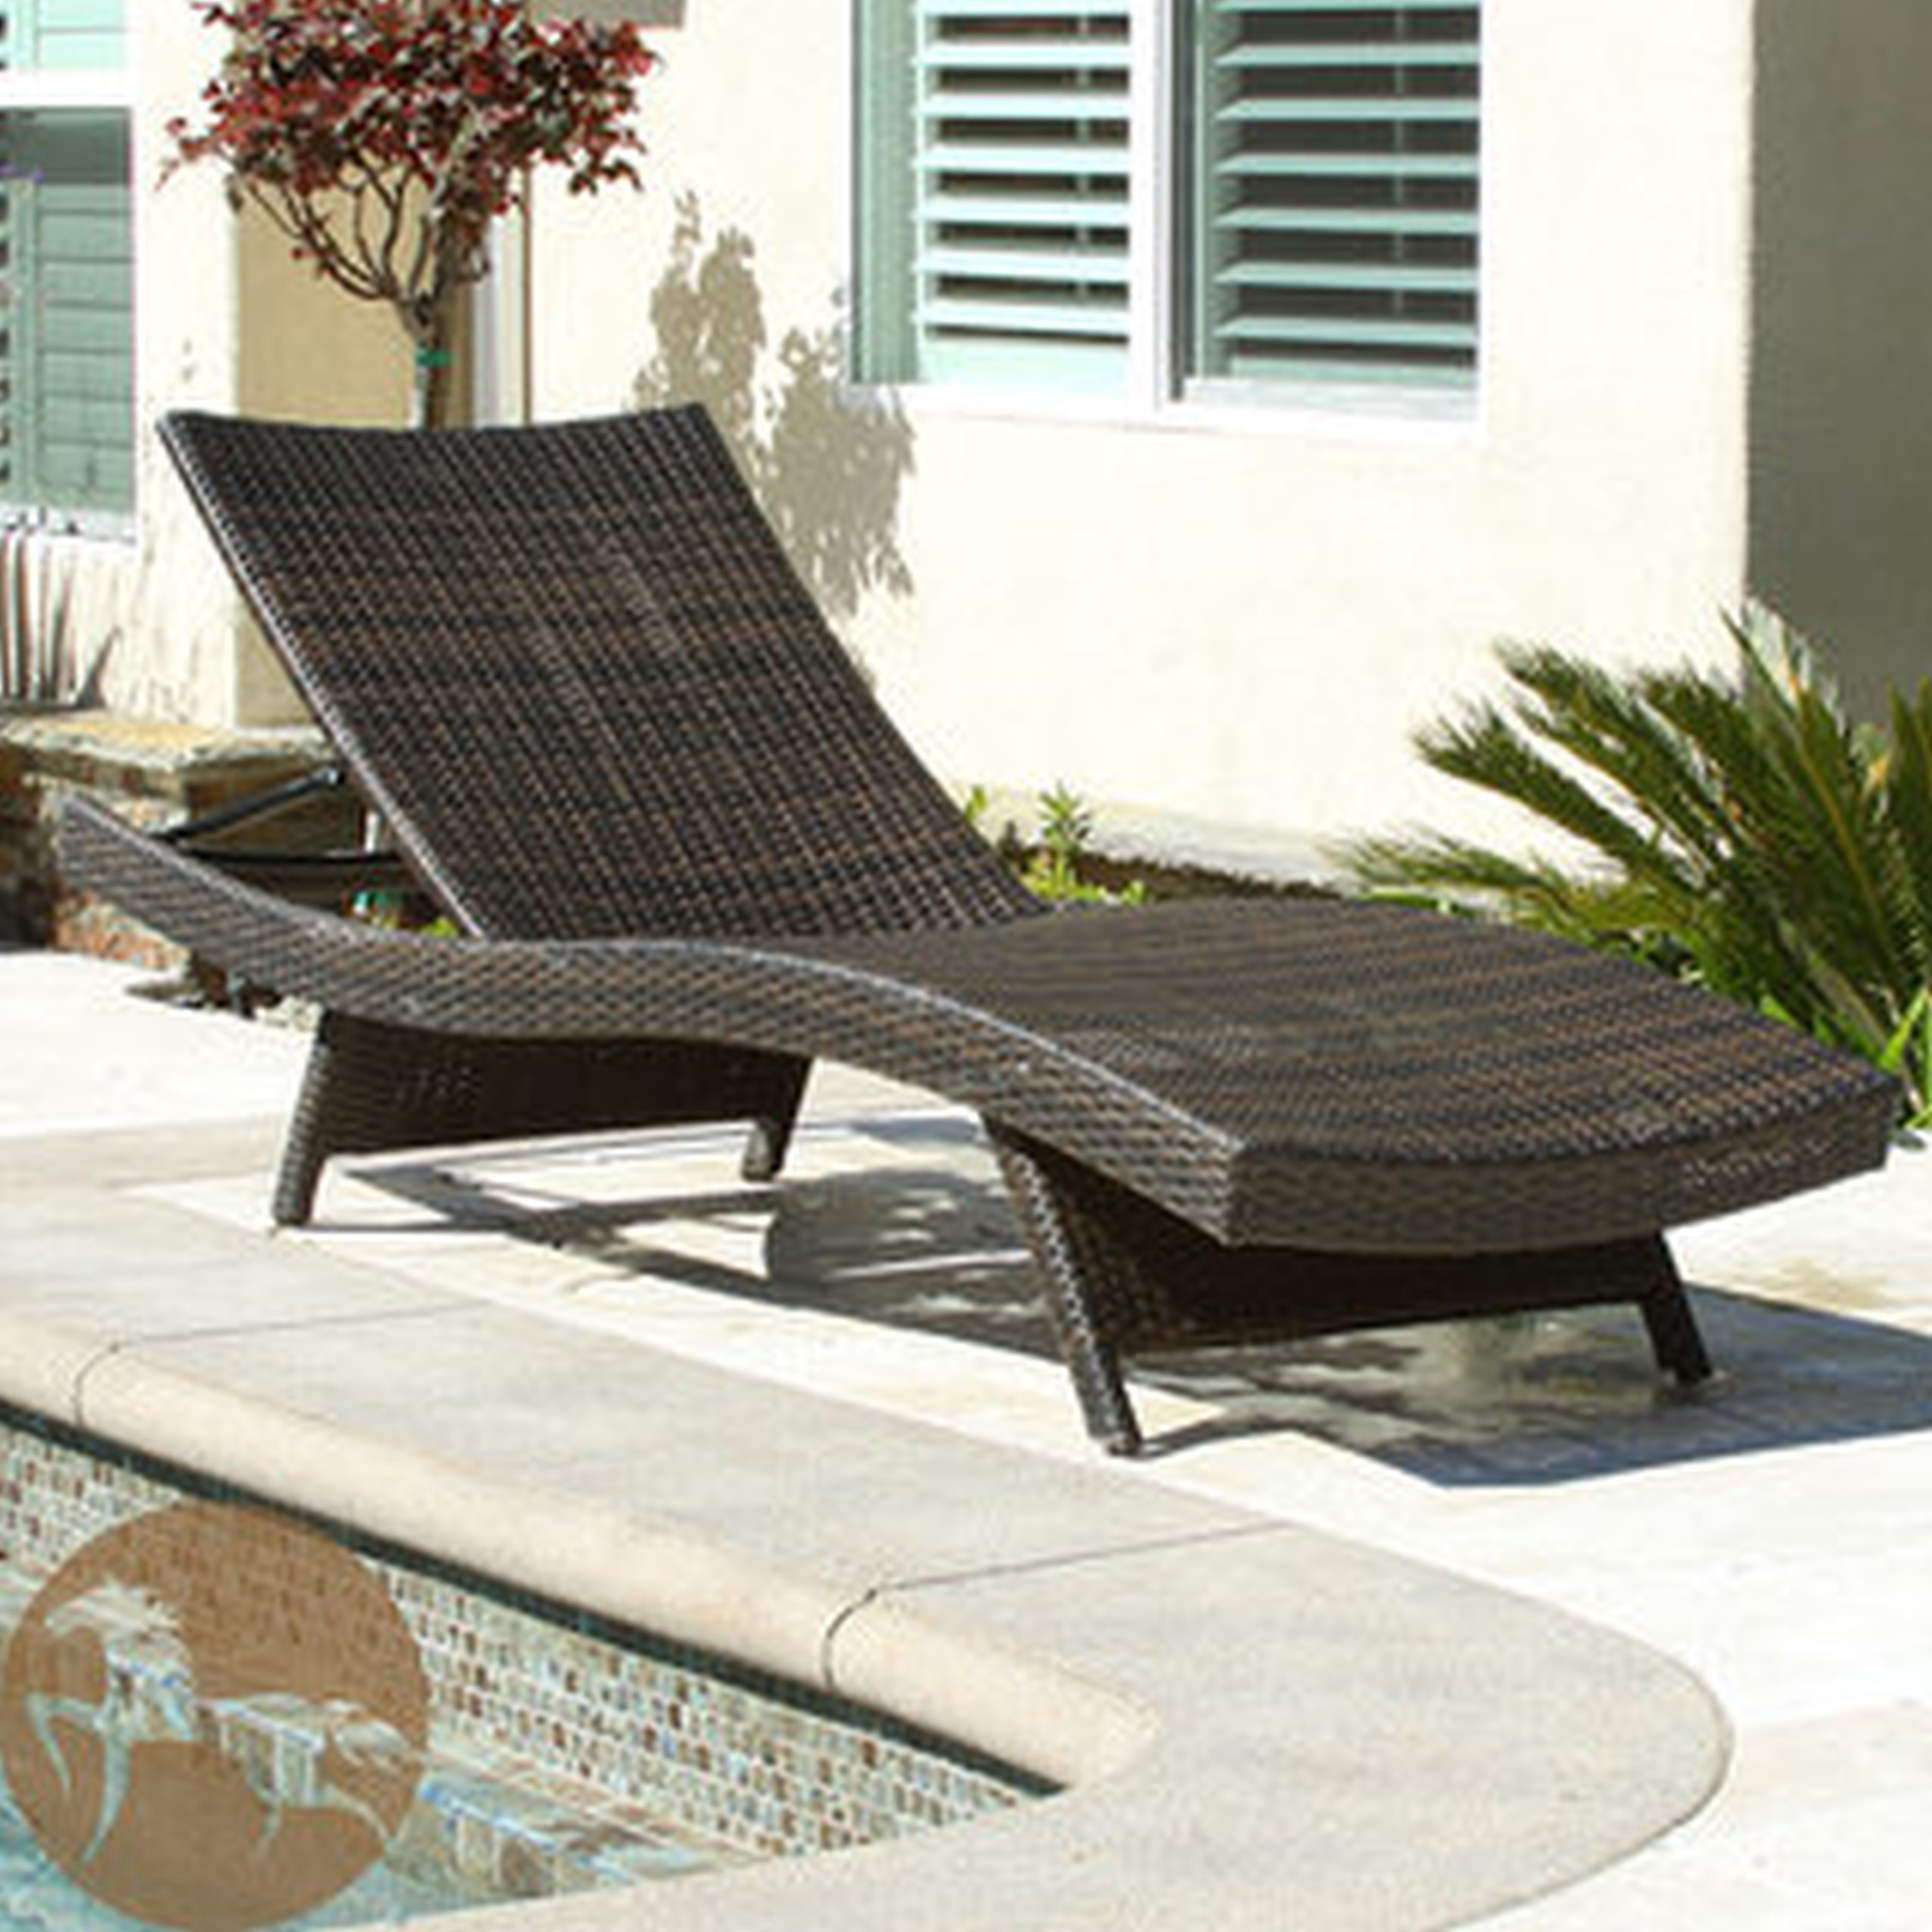 Current Outdoor : Chaise Lounge Sofa Lowes Patio Furniture Clearance Regarding Chaise Lounge Chairs At Walmart (View 7 of 15)